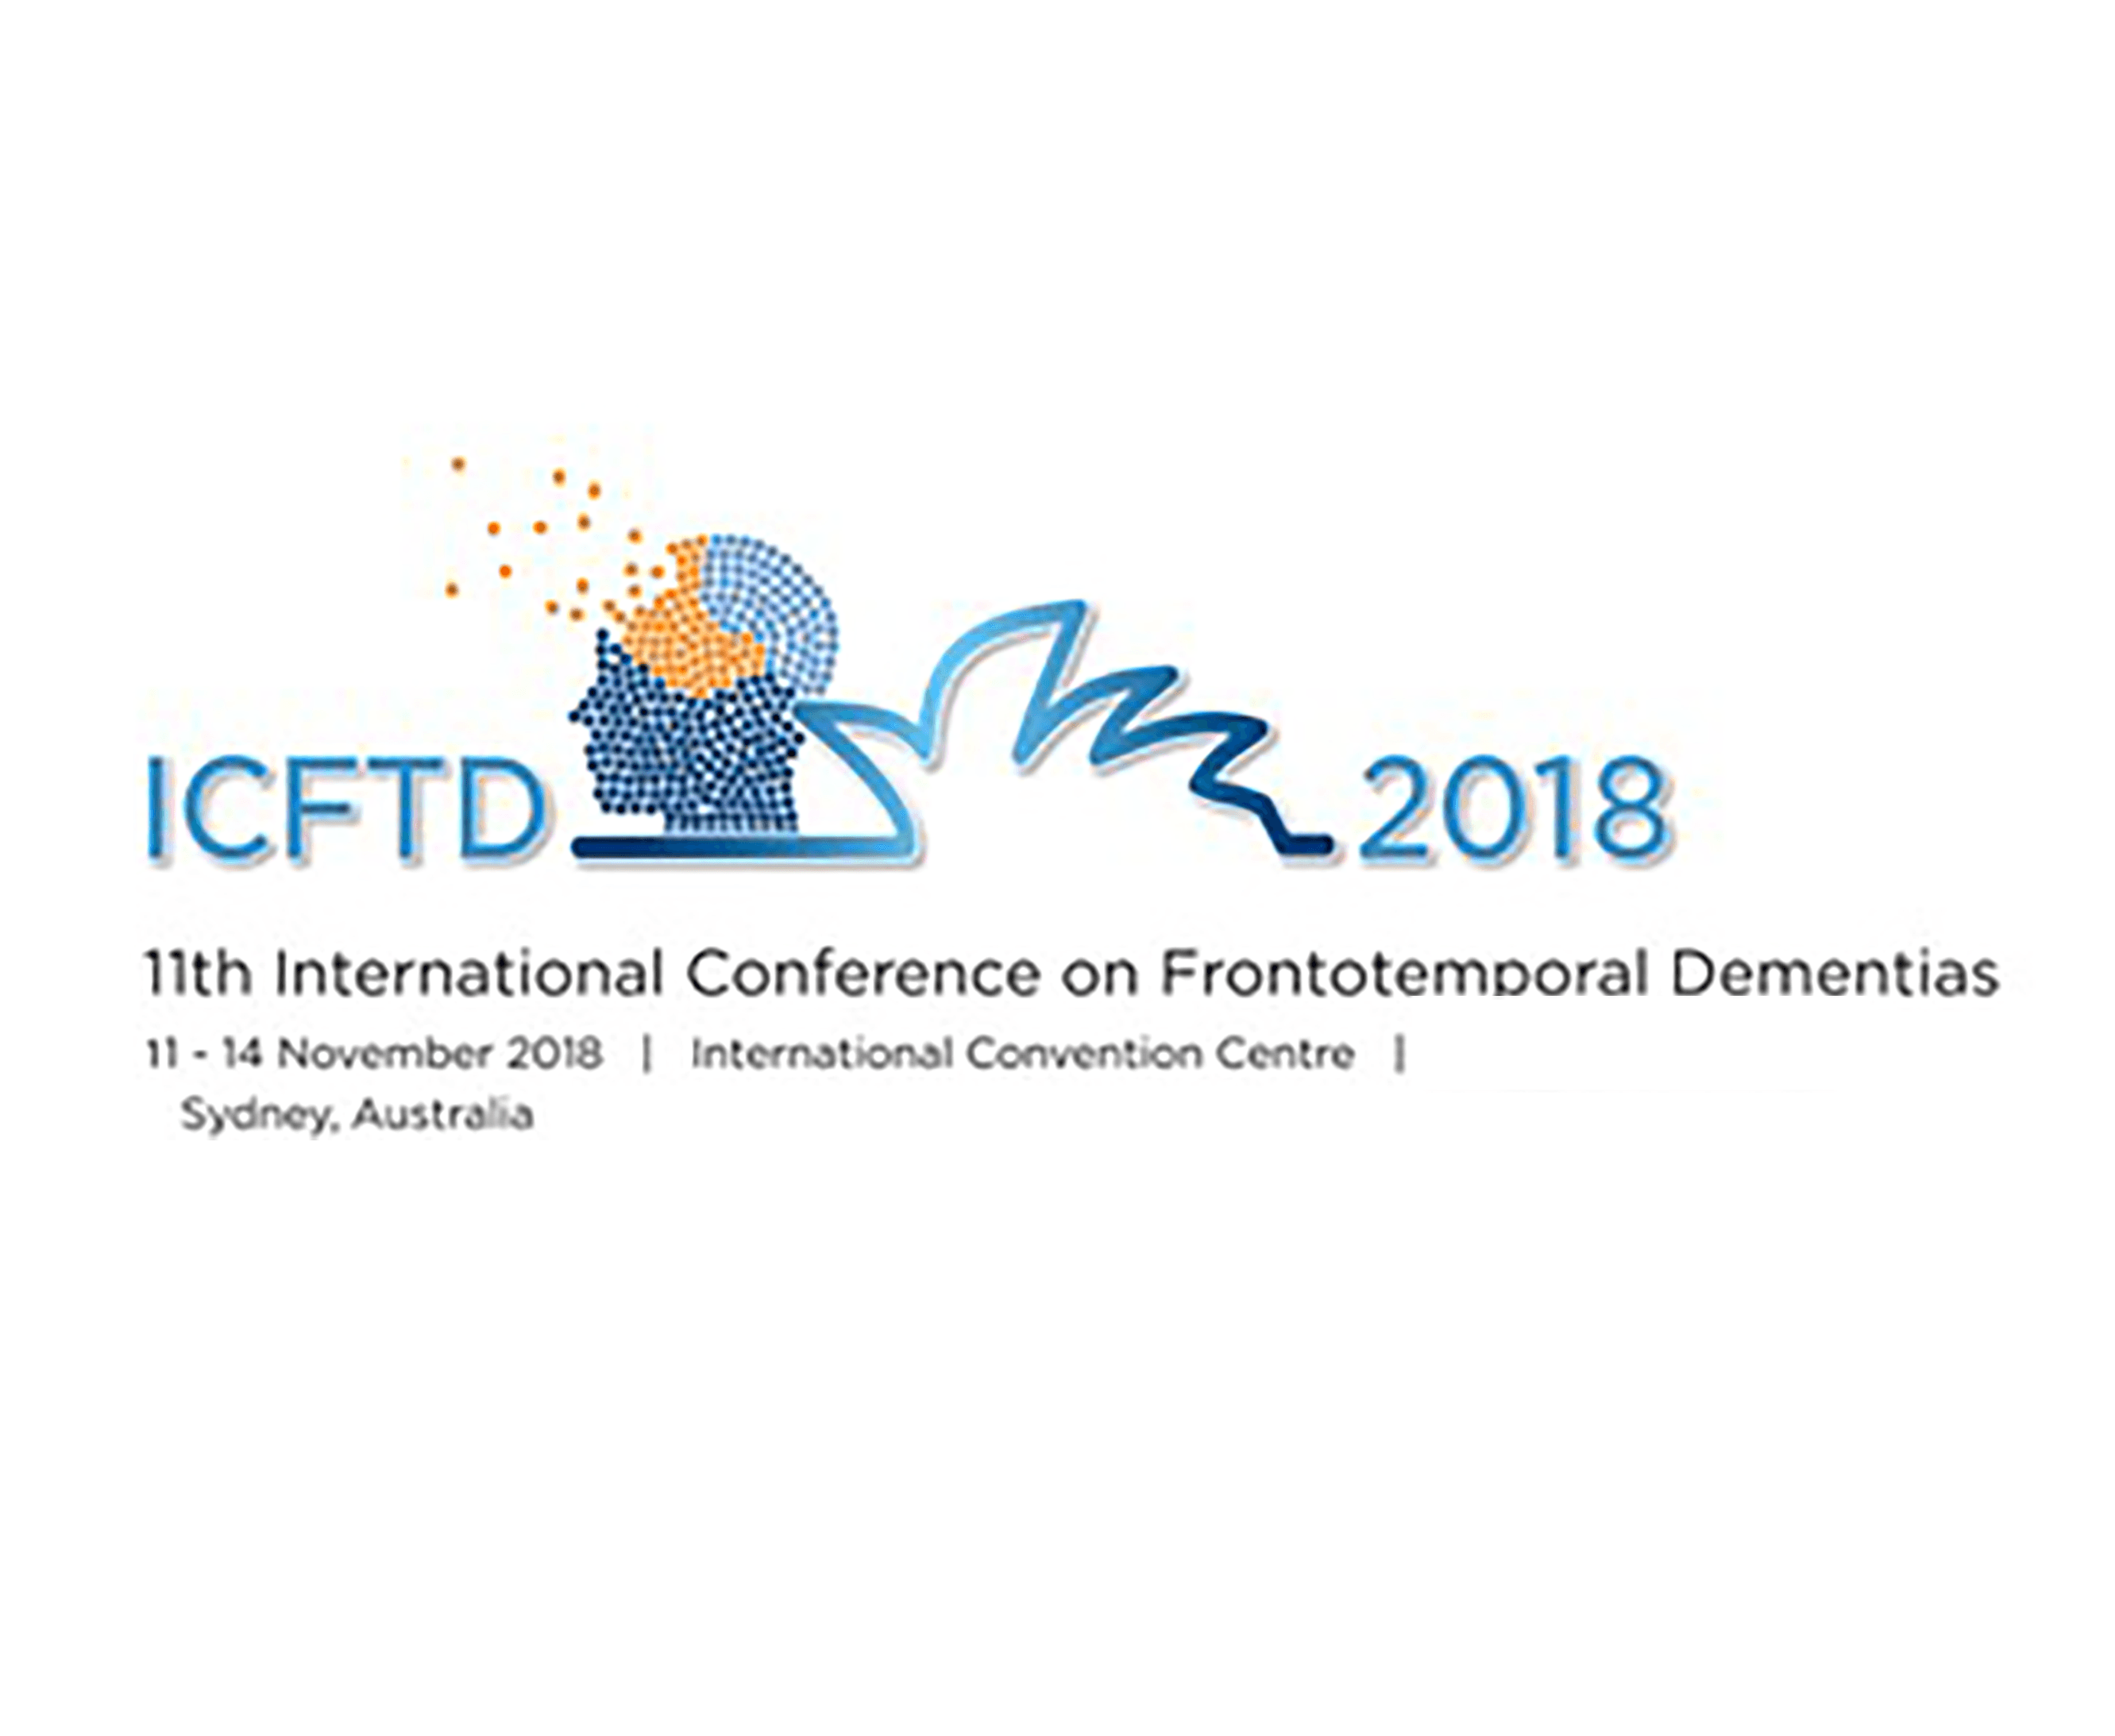 ICFTD Prof. Amy Brodtmann Biomarkers for clinical trials in FTD